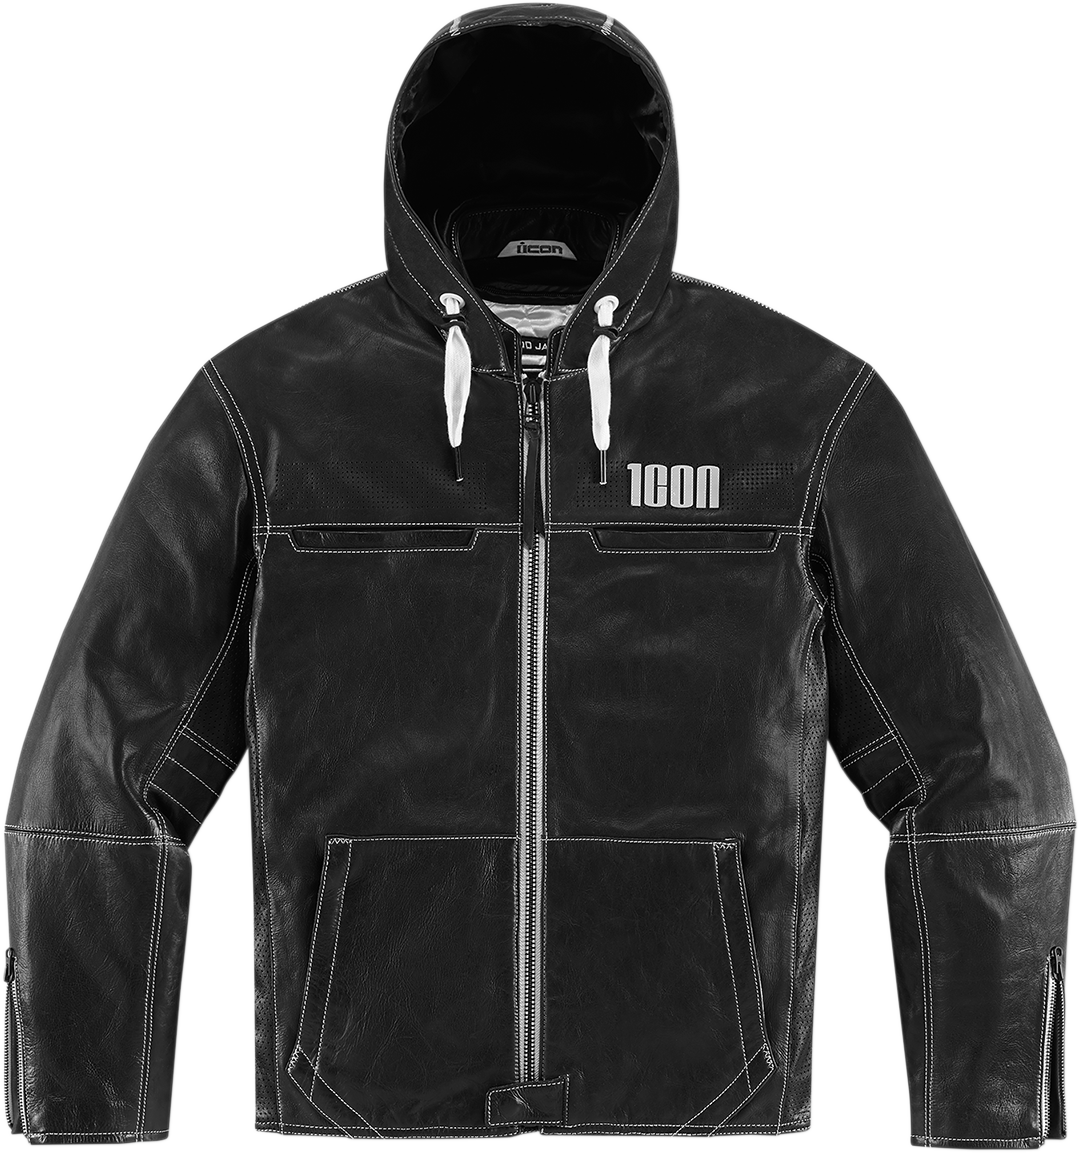 Icon 1000 The Hood Jacket Black Part 017871 MSRP 659